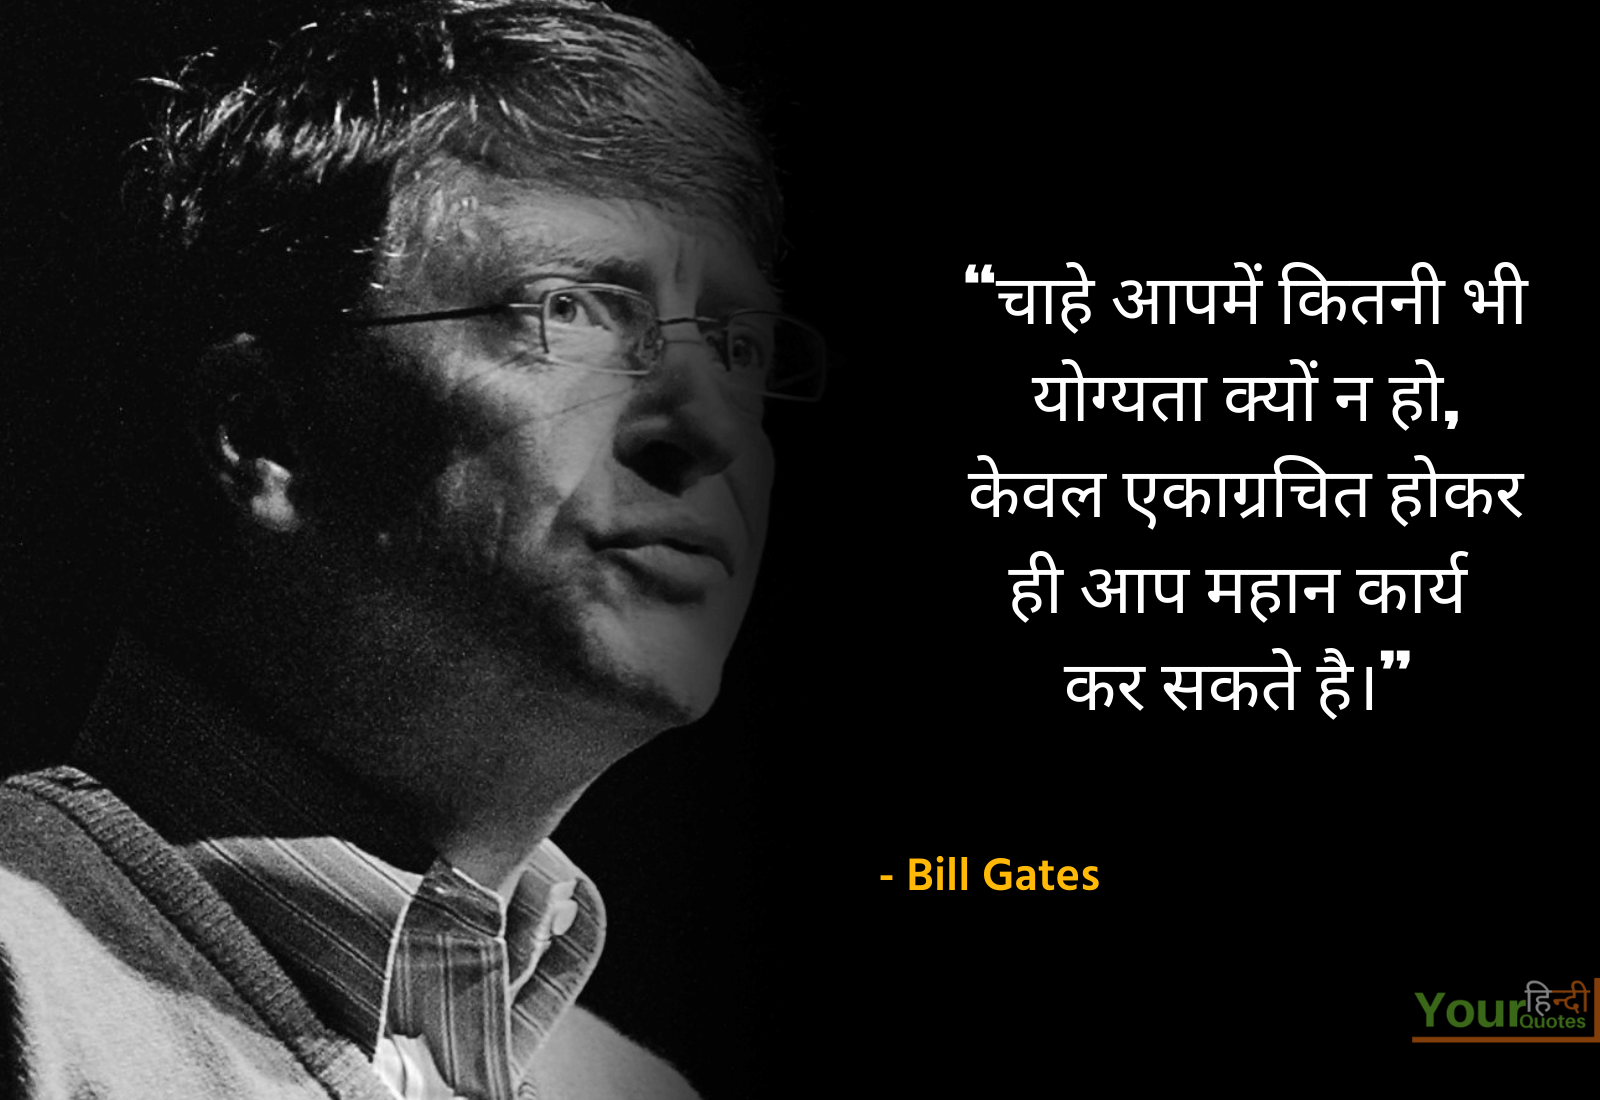 Bill Gates Hindi Quote Image